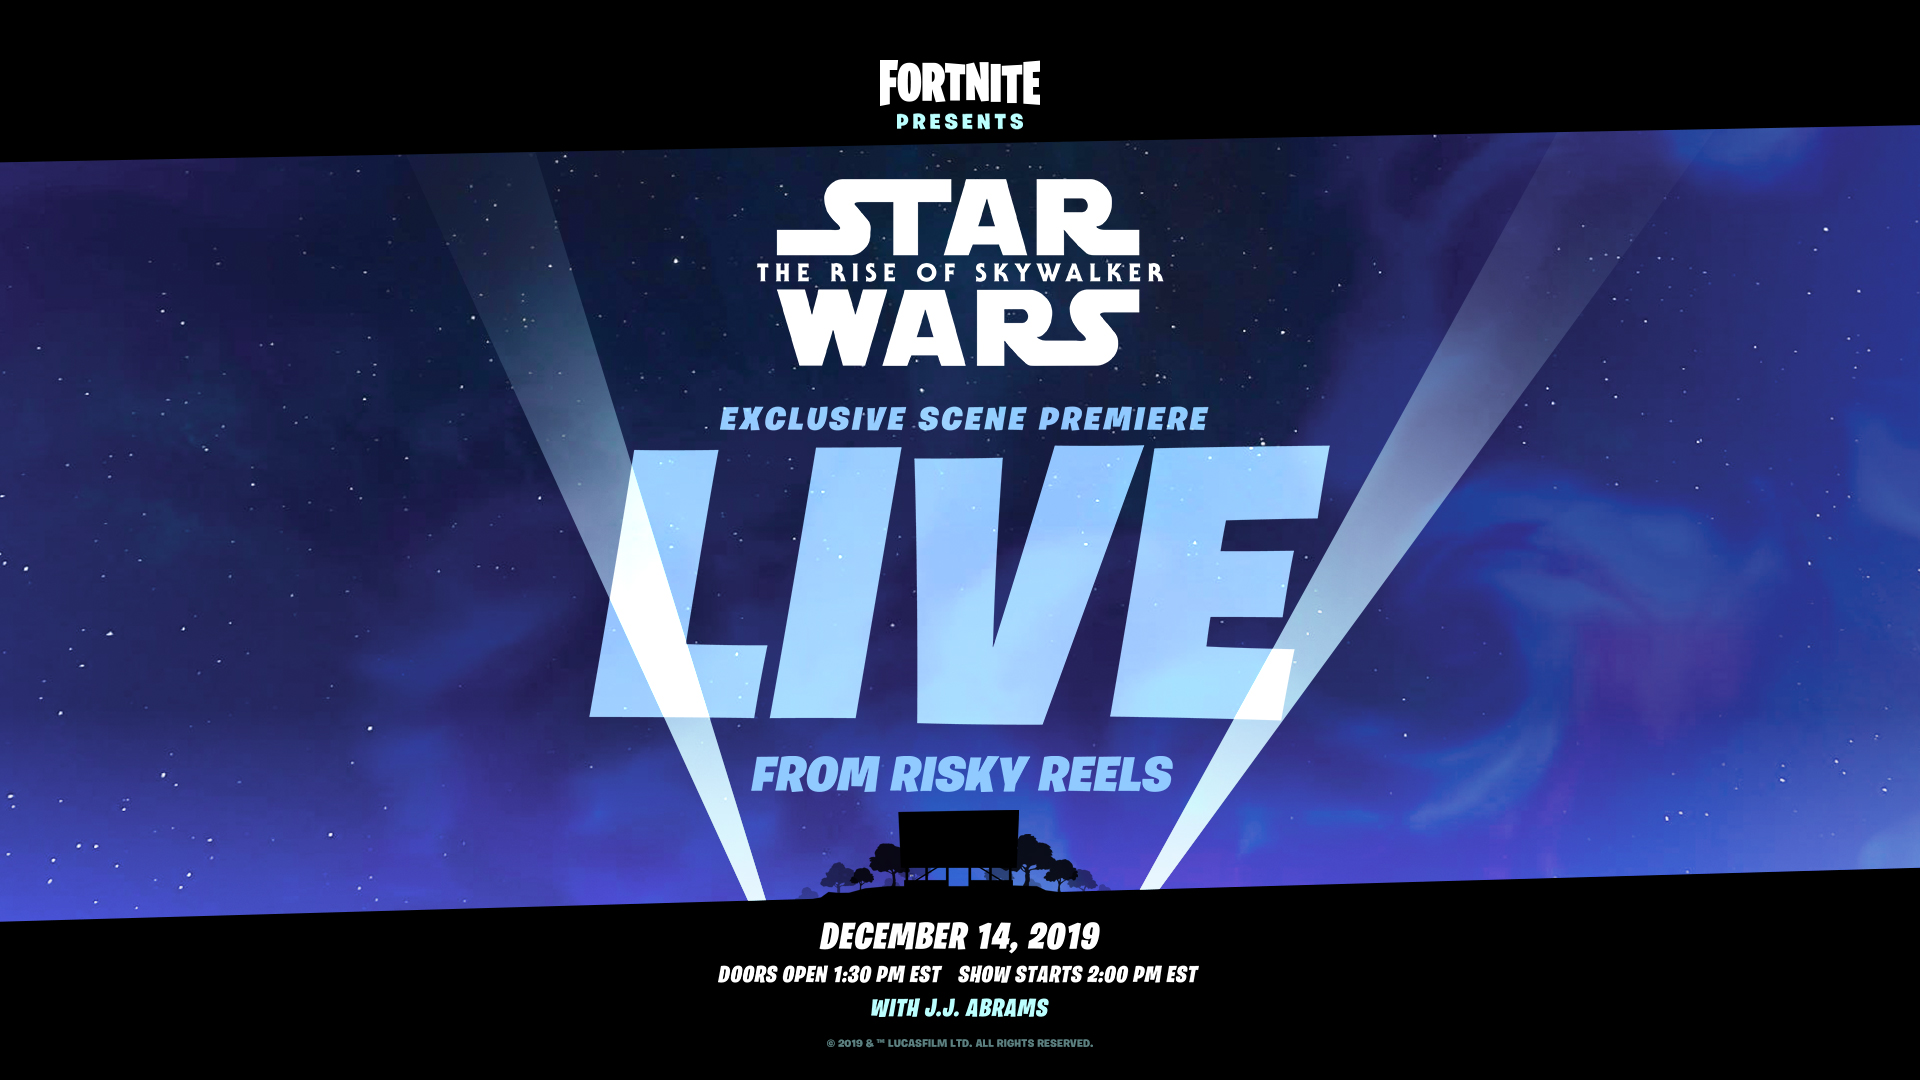 fortnite star wars event - photo #1